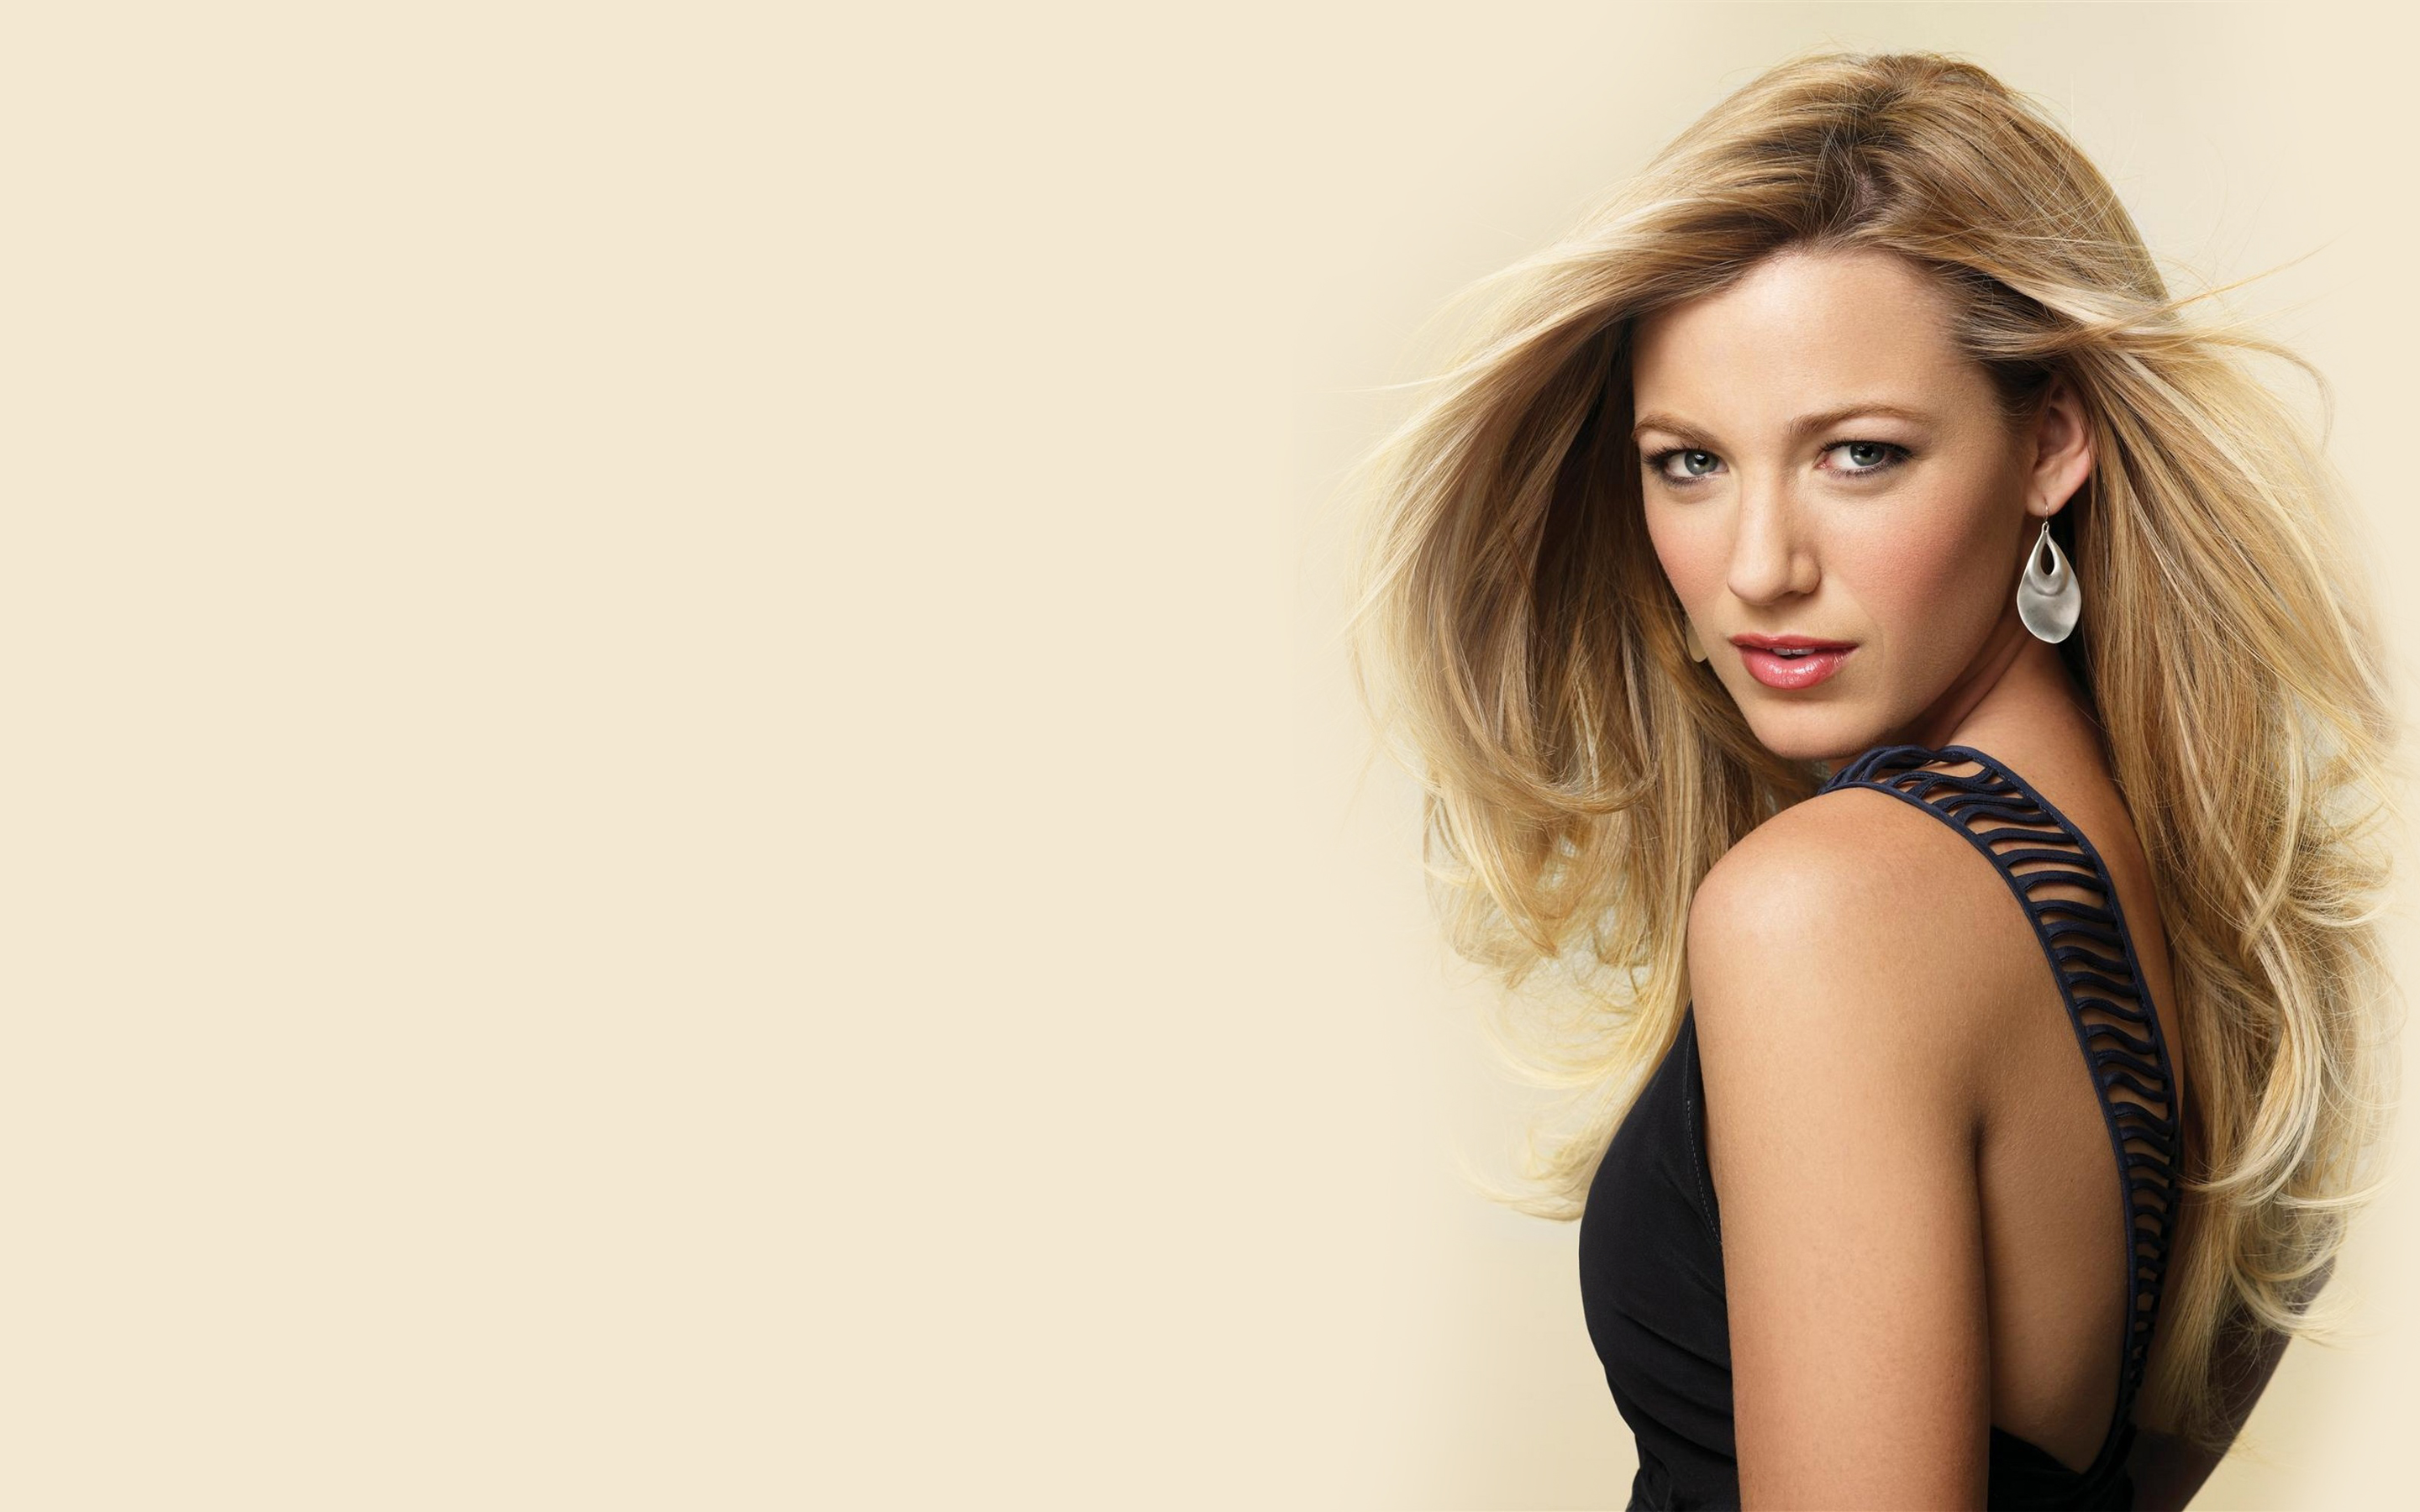 Vampire Love Quotes Wallpaper 21 Gorgeous Hd Blake Lively Wallpapers